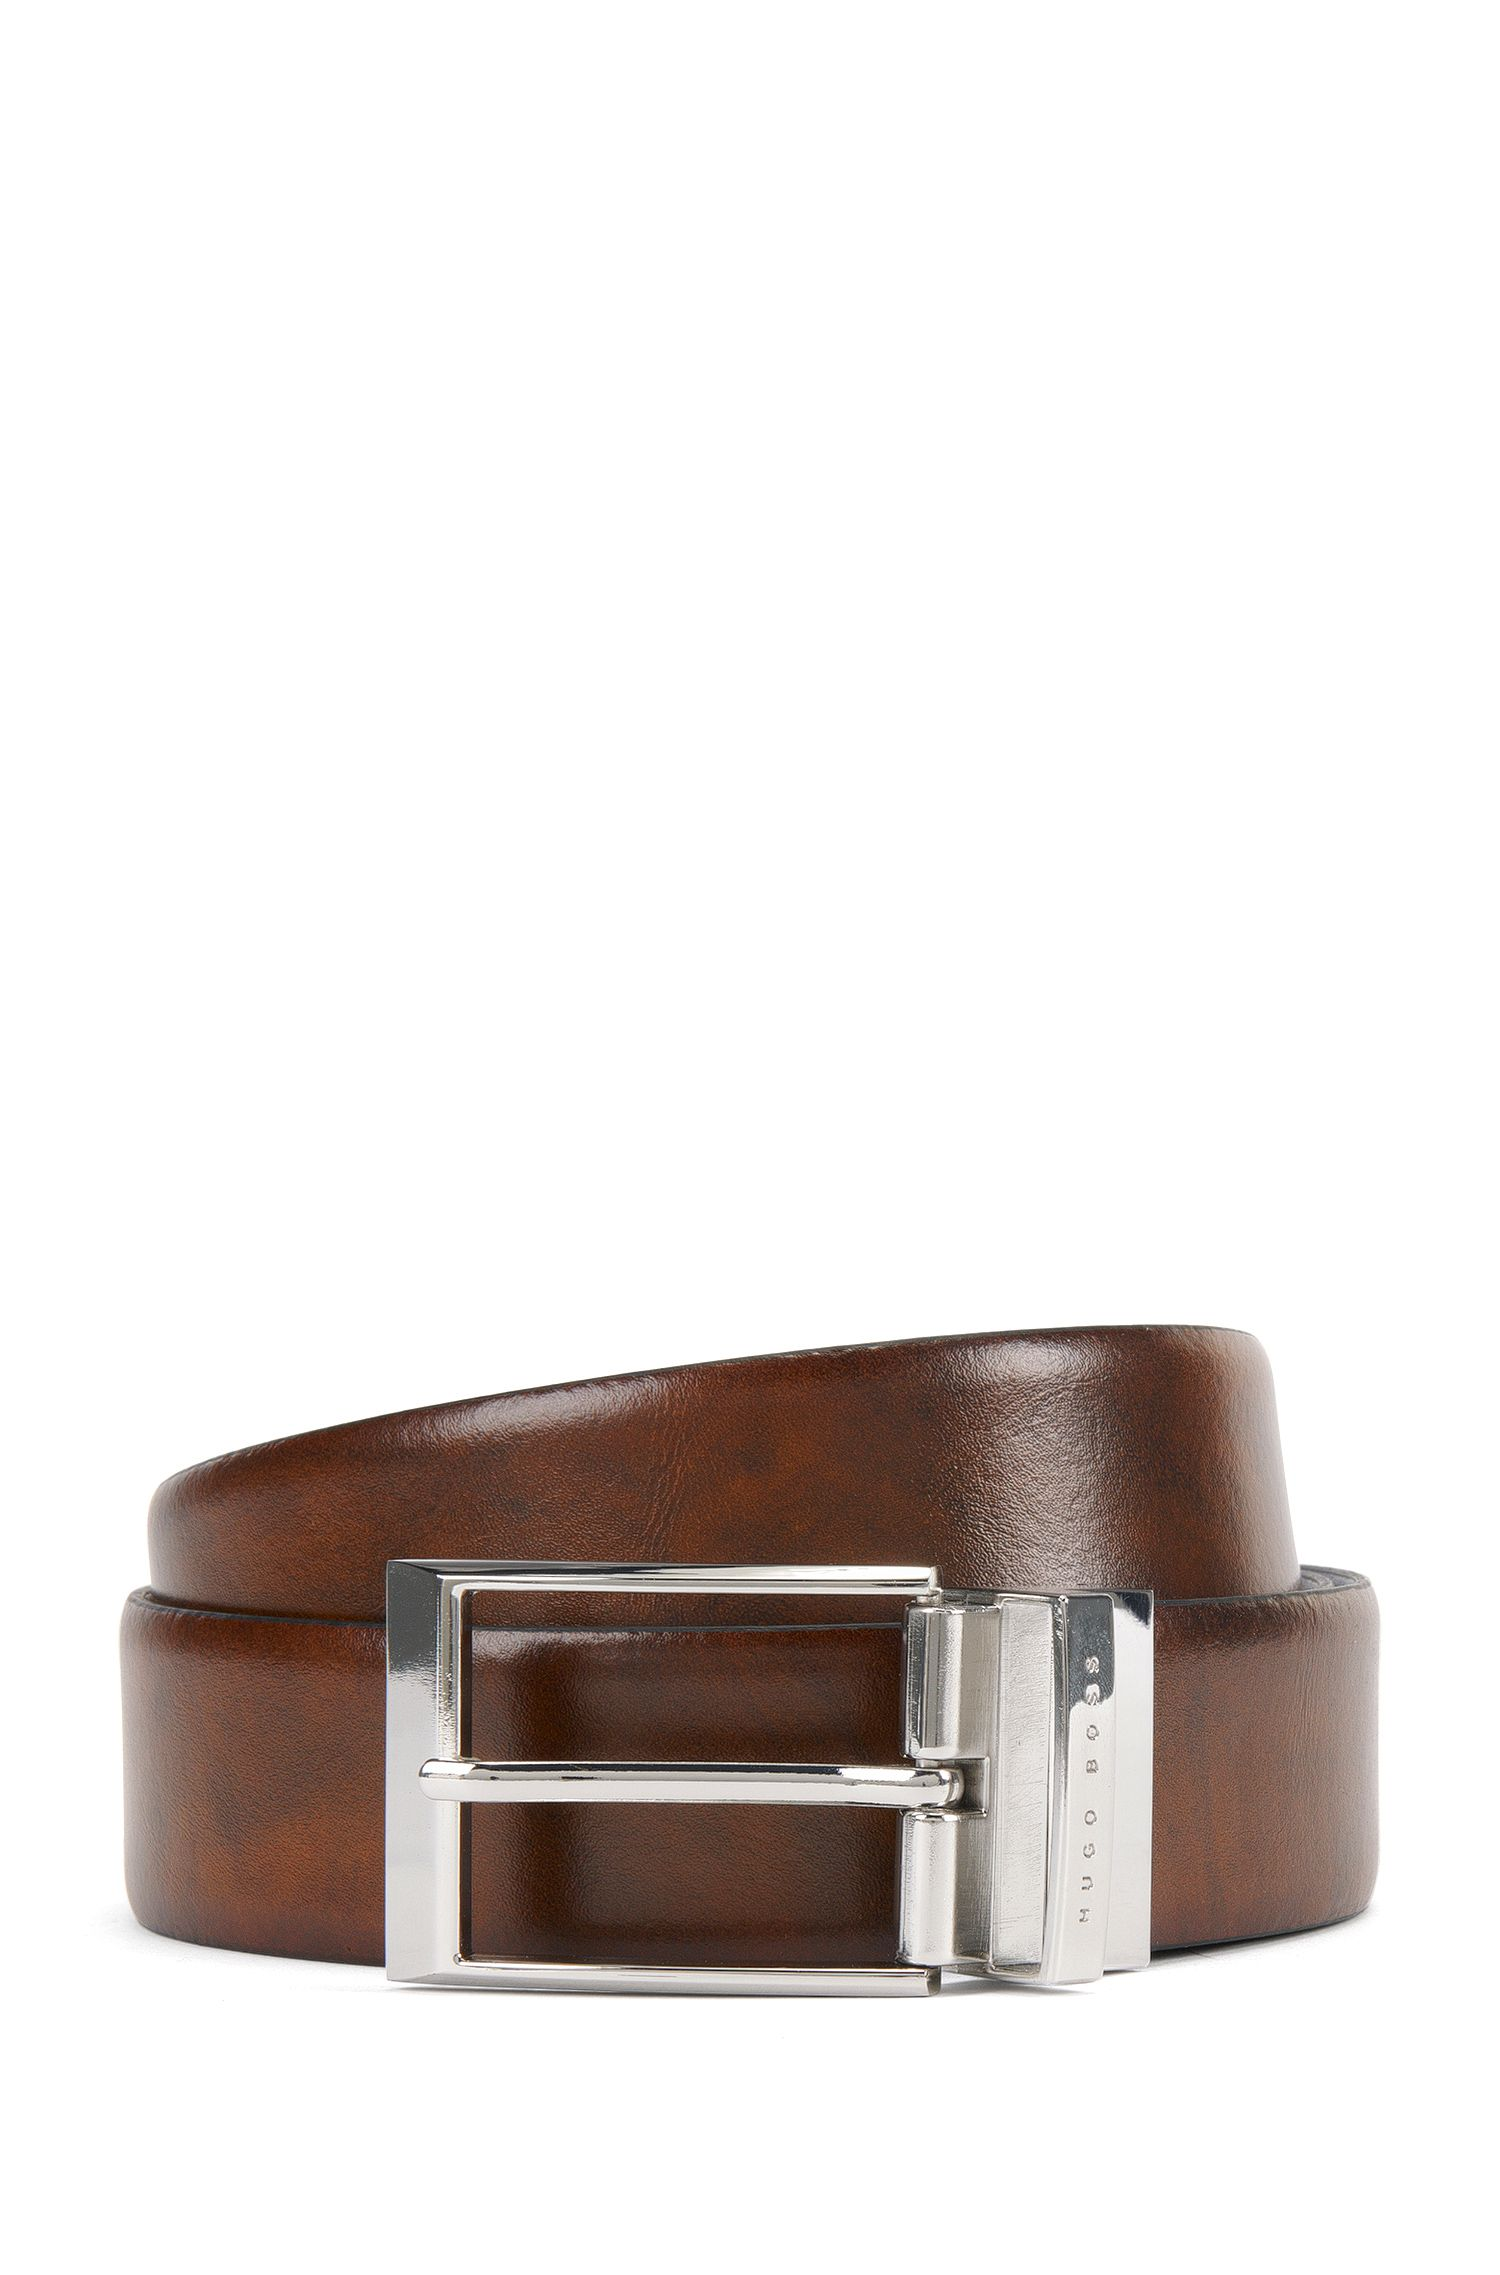 Reversible belt in smooth leather